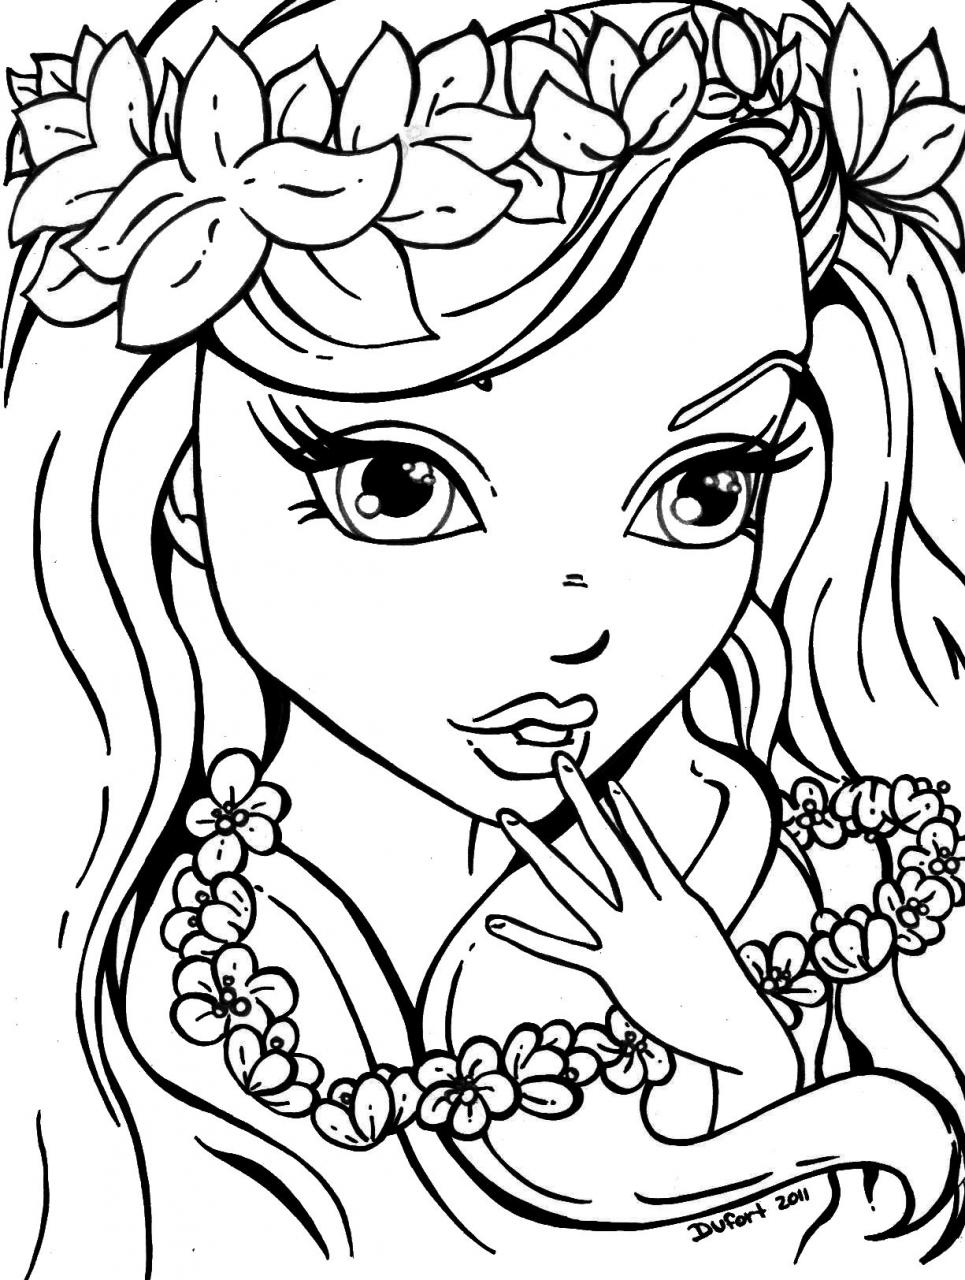 colour in pictures for girls coloring pages for girls best coloring pages for kids pictures colour in girls for